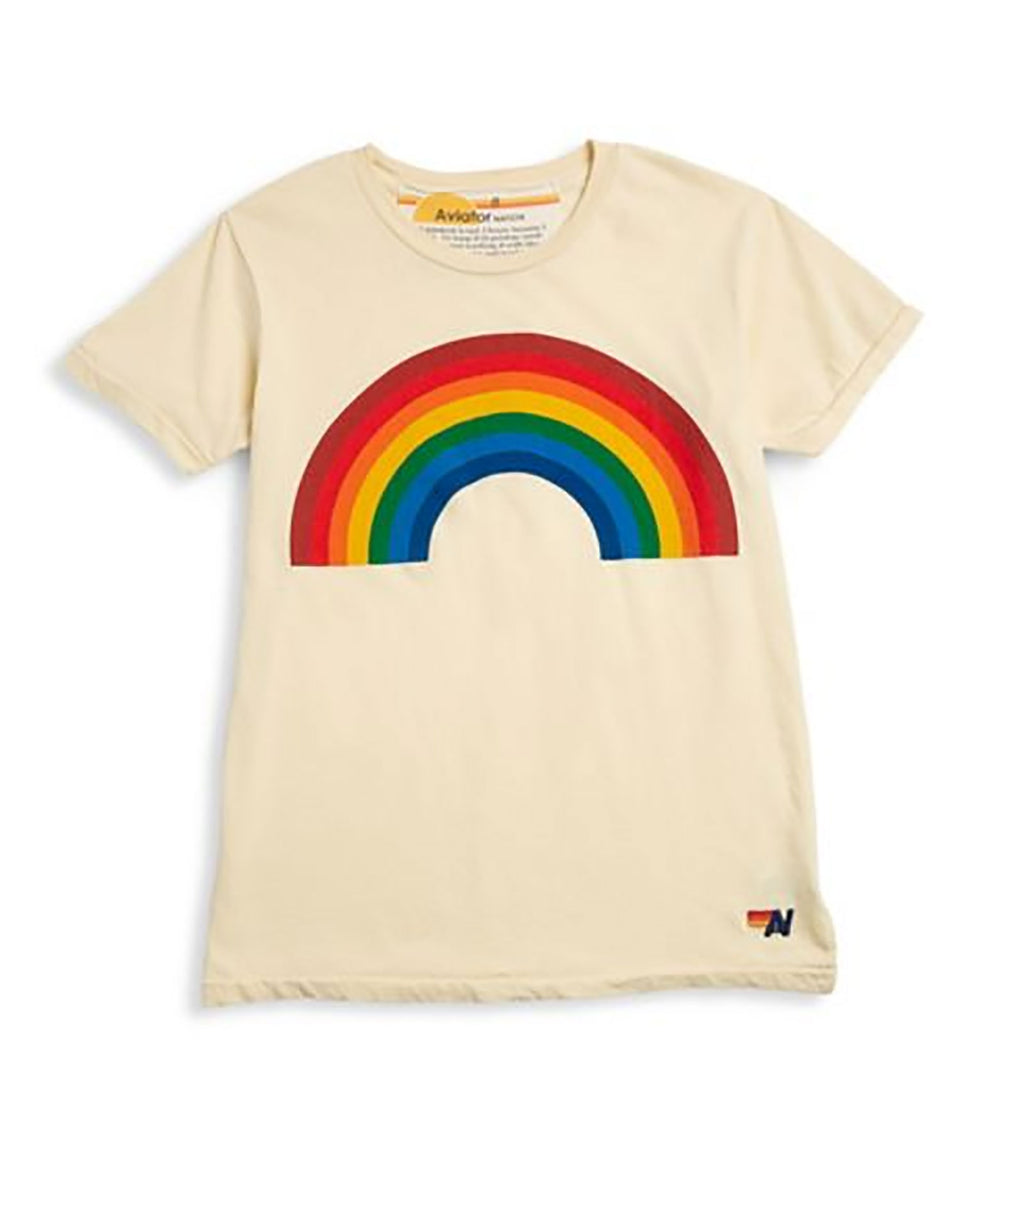 Aviator Nation Girls Rainbow Tee